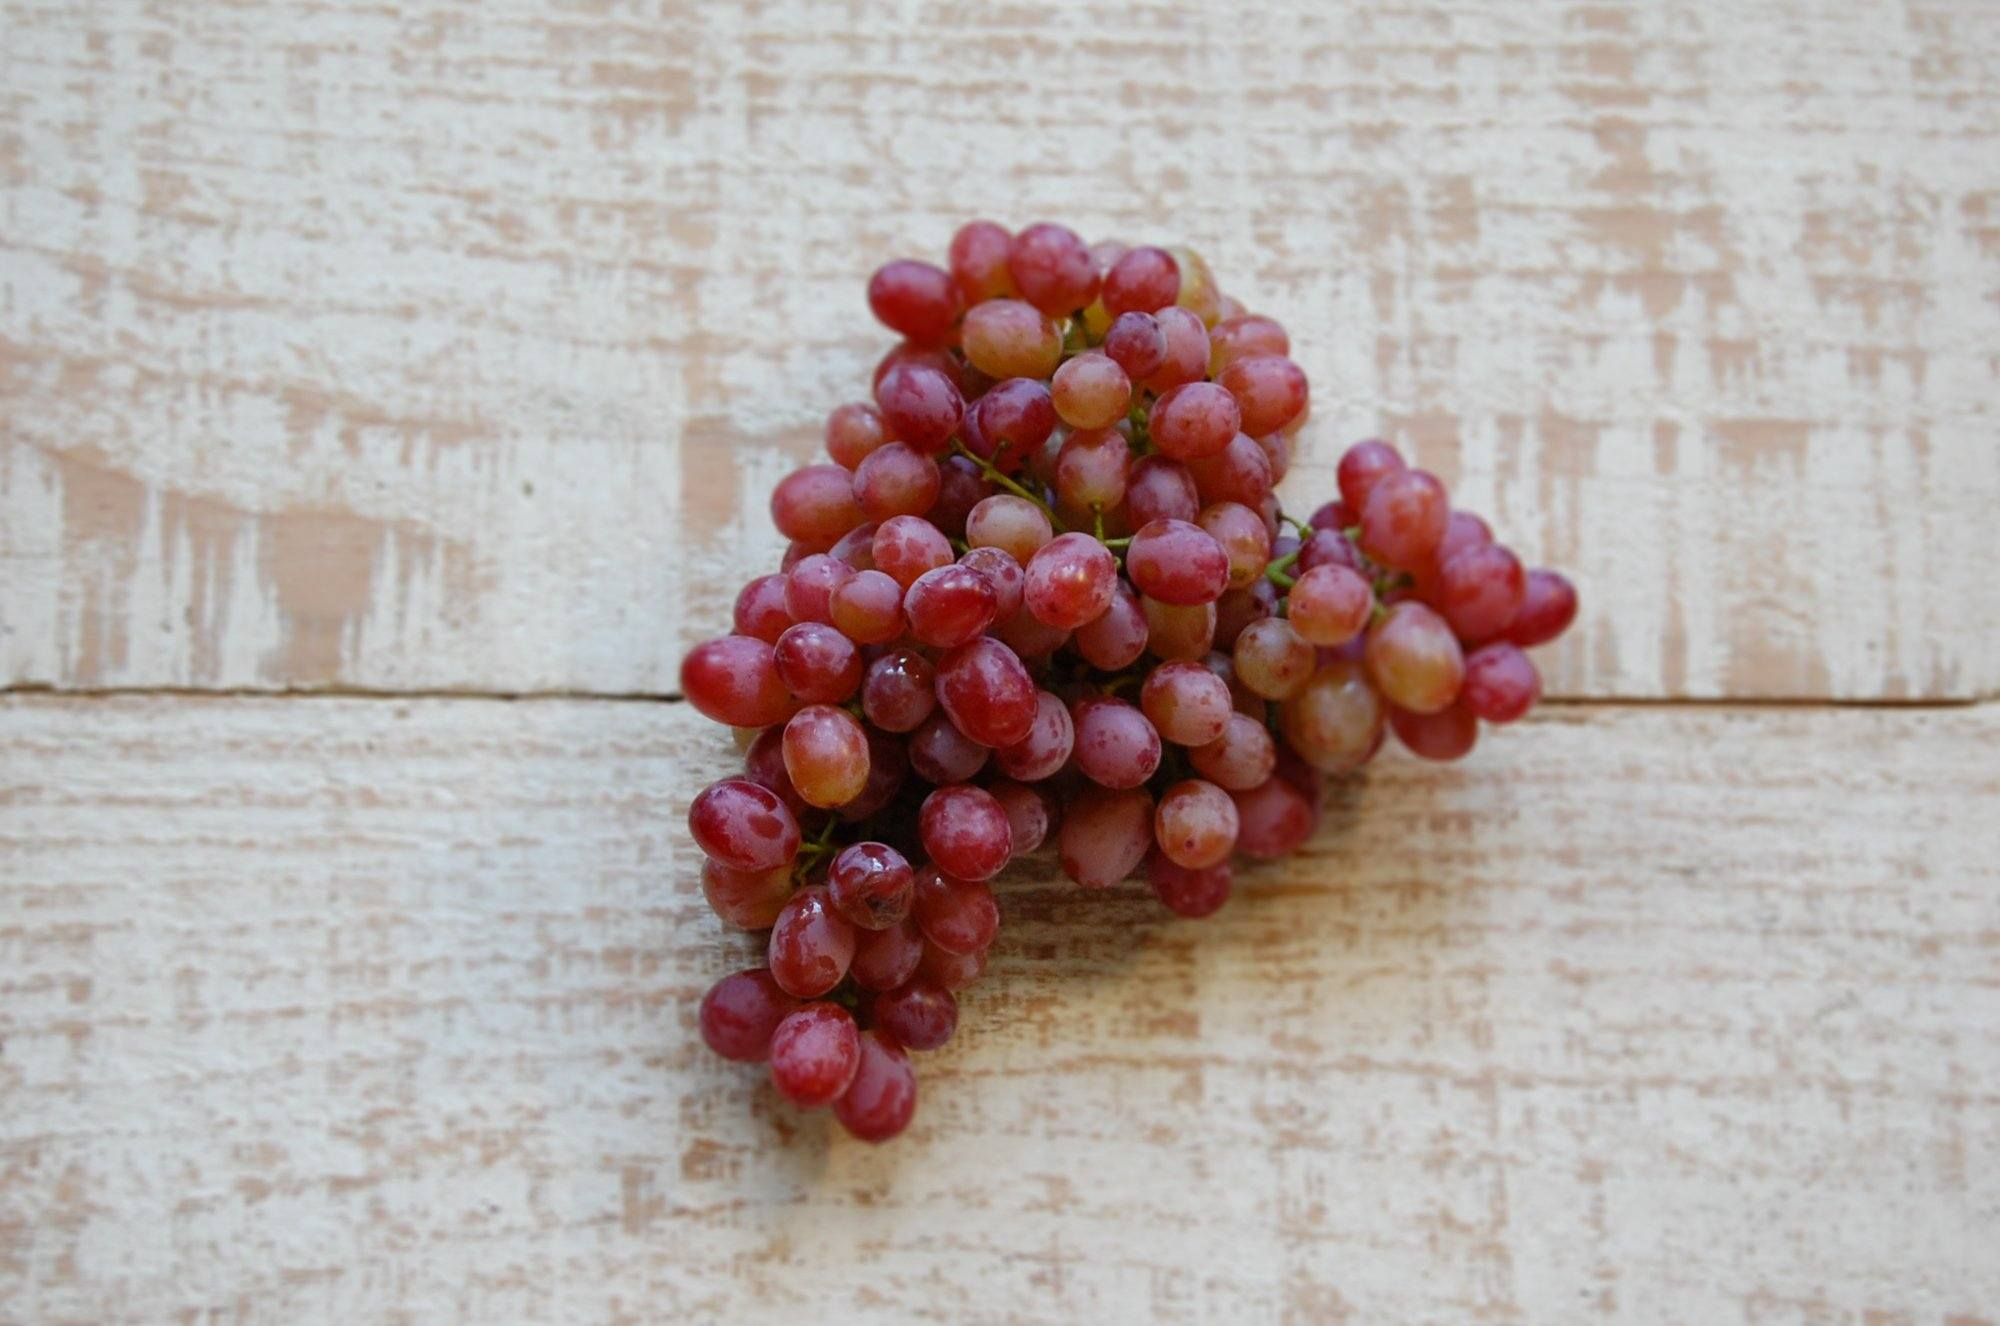 Grapes, Crimson Seedless (biodynamic)